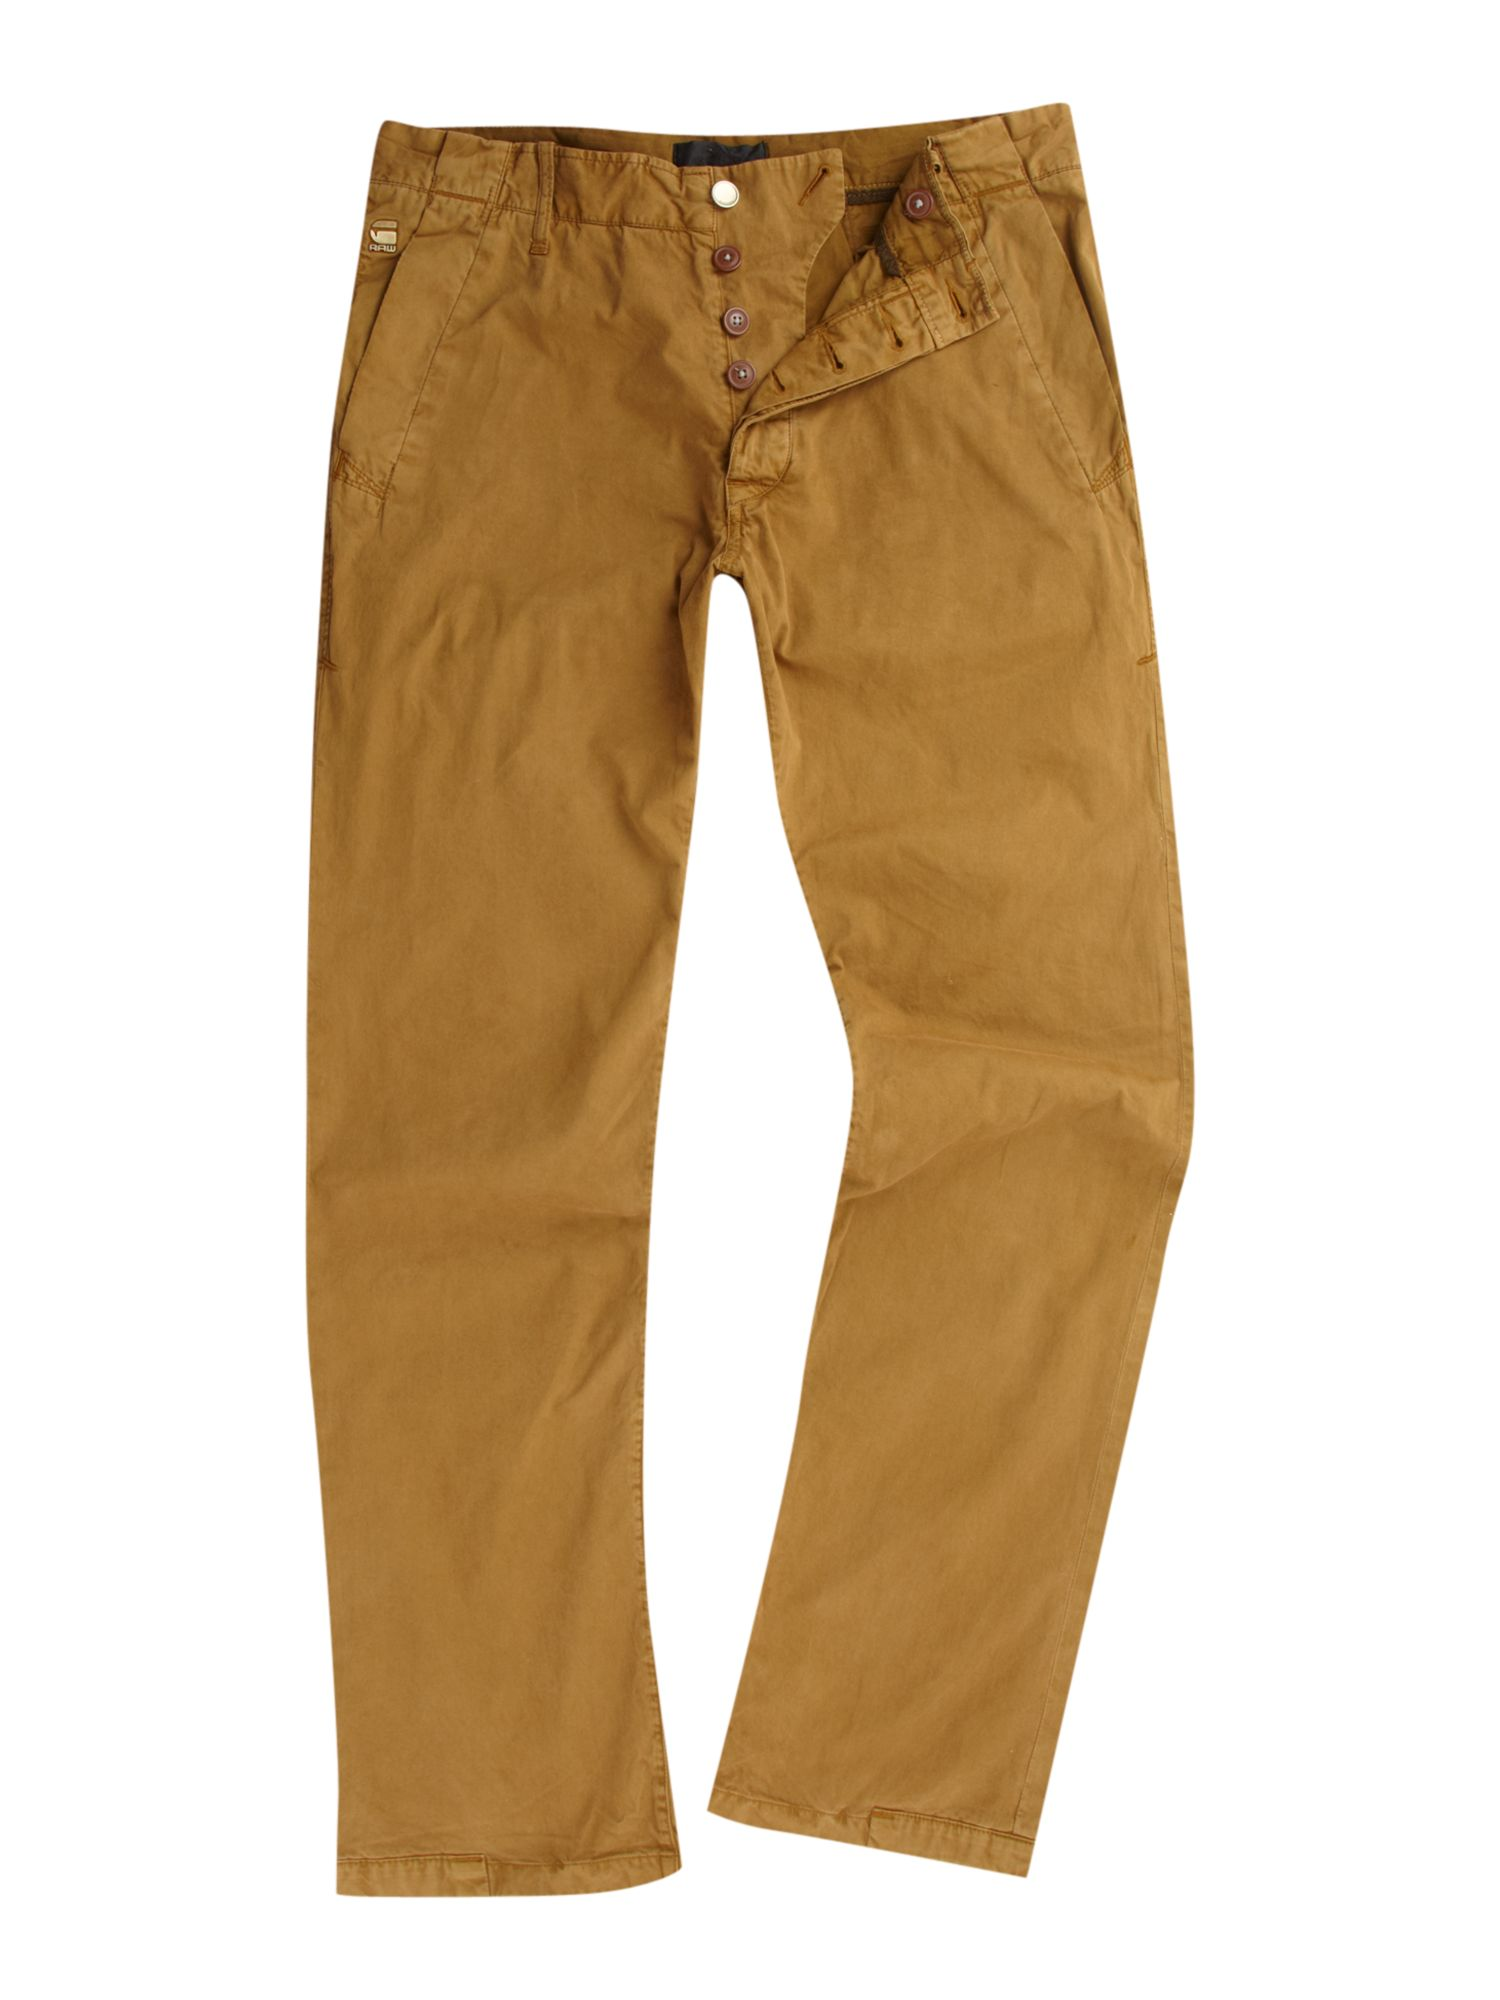 g star raw new bronson tapered chino in brown for men lyst. Black Bedroom Furniture Sets. Home Design Ideas